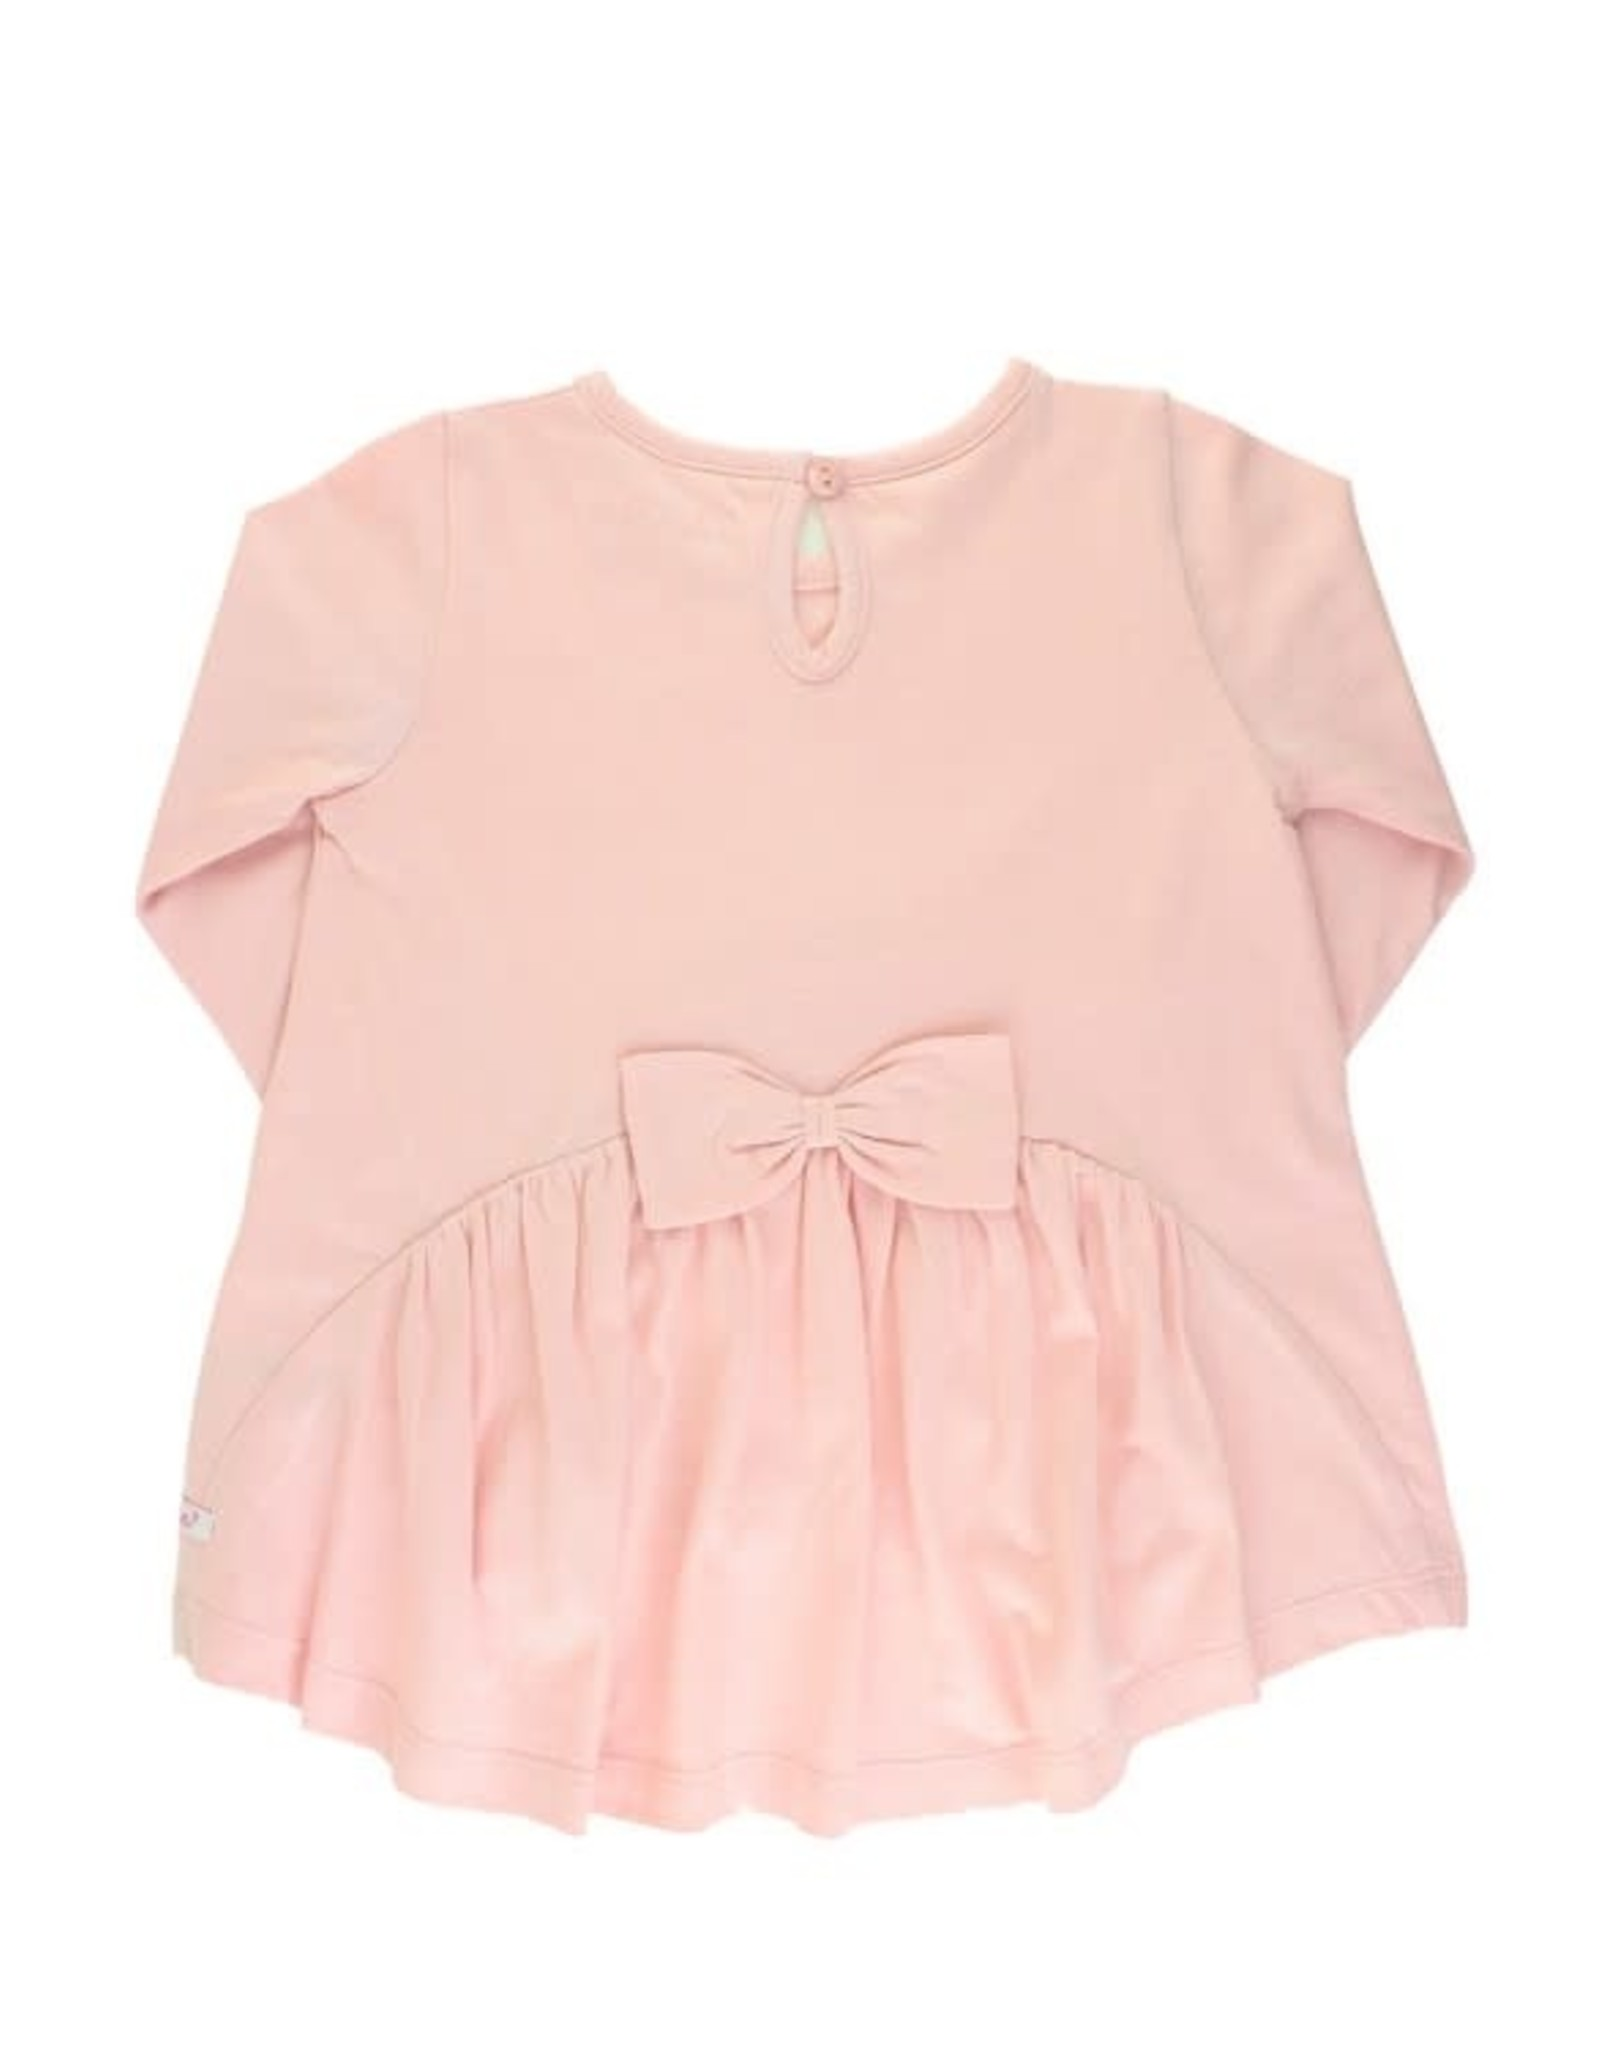 RuffleButts Ballet Pink Long Sleeve Bow Back Top